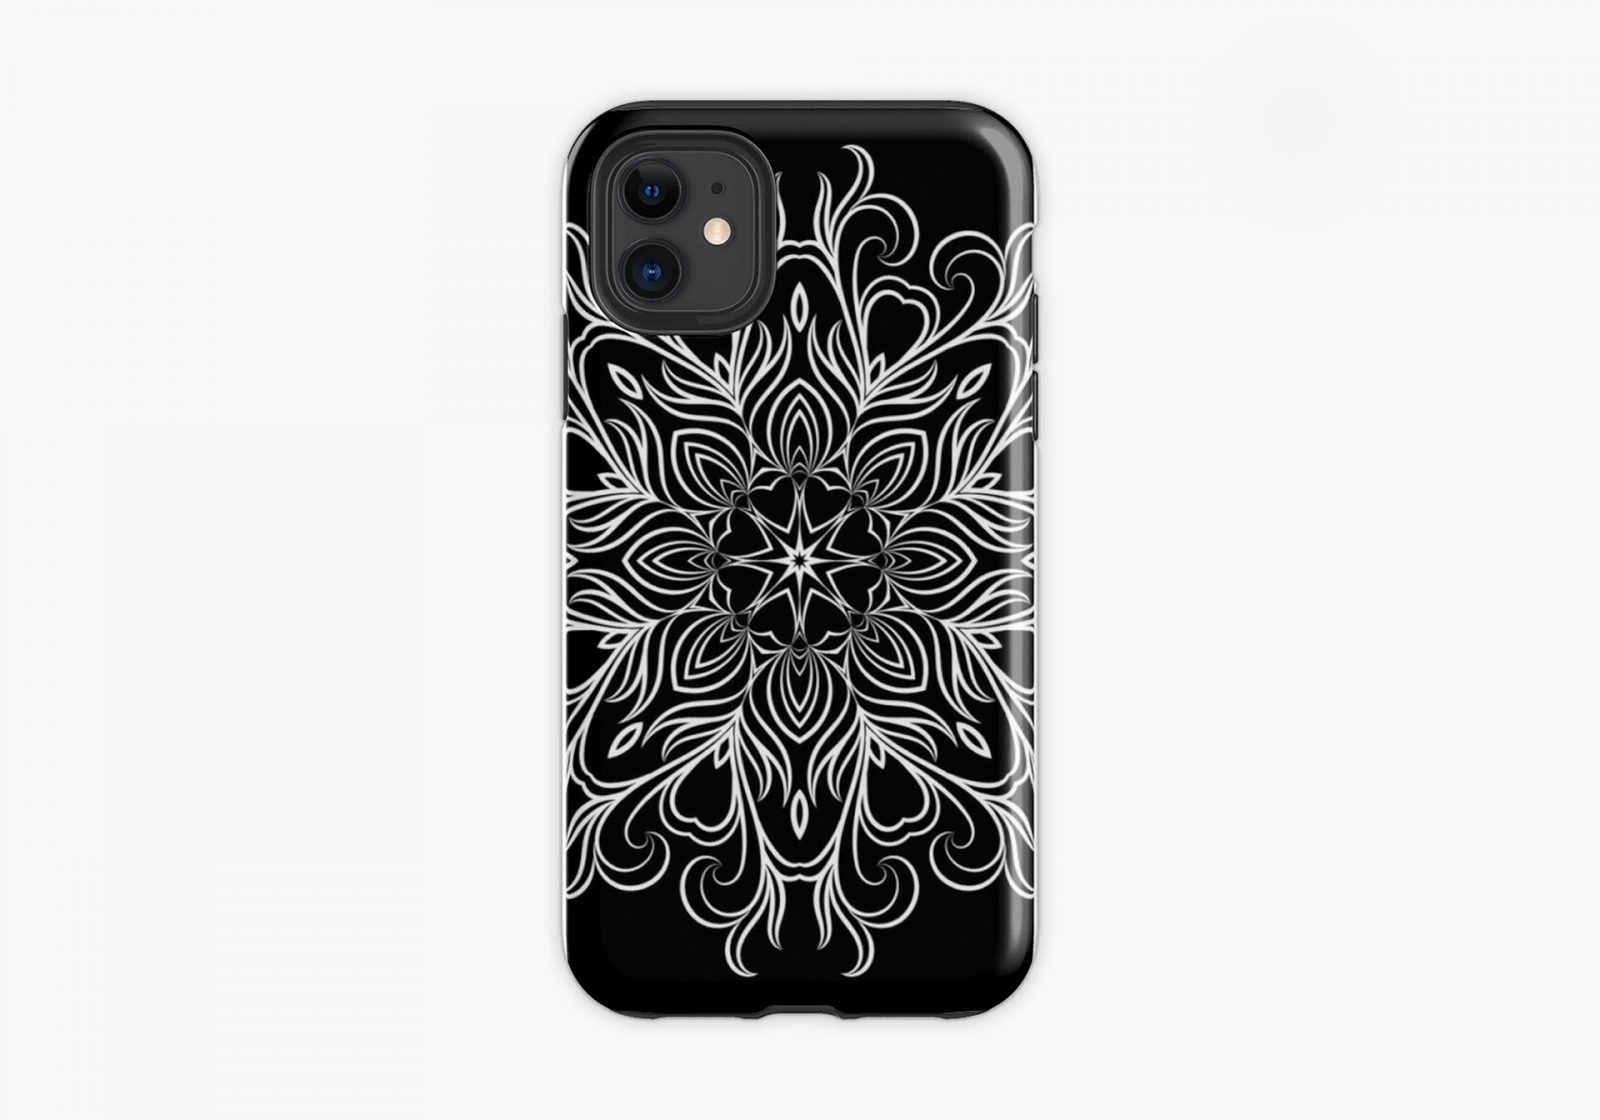 Mandala phone case - artwork by Henry Egloff